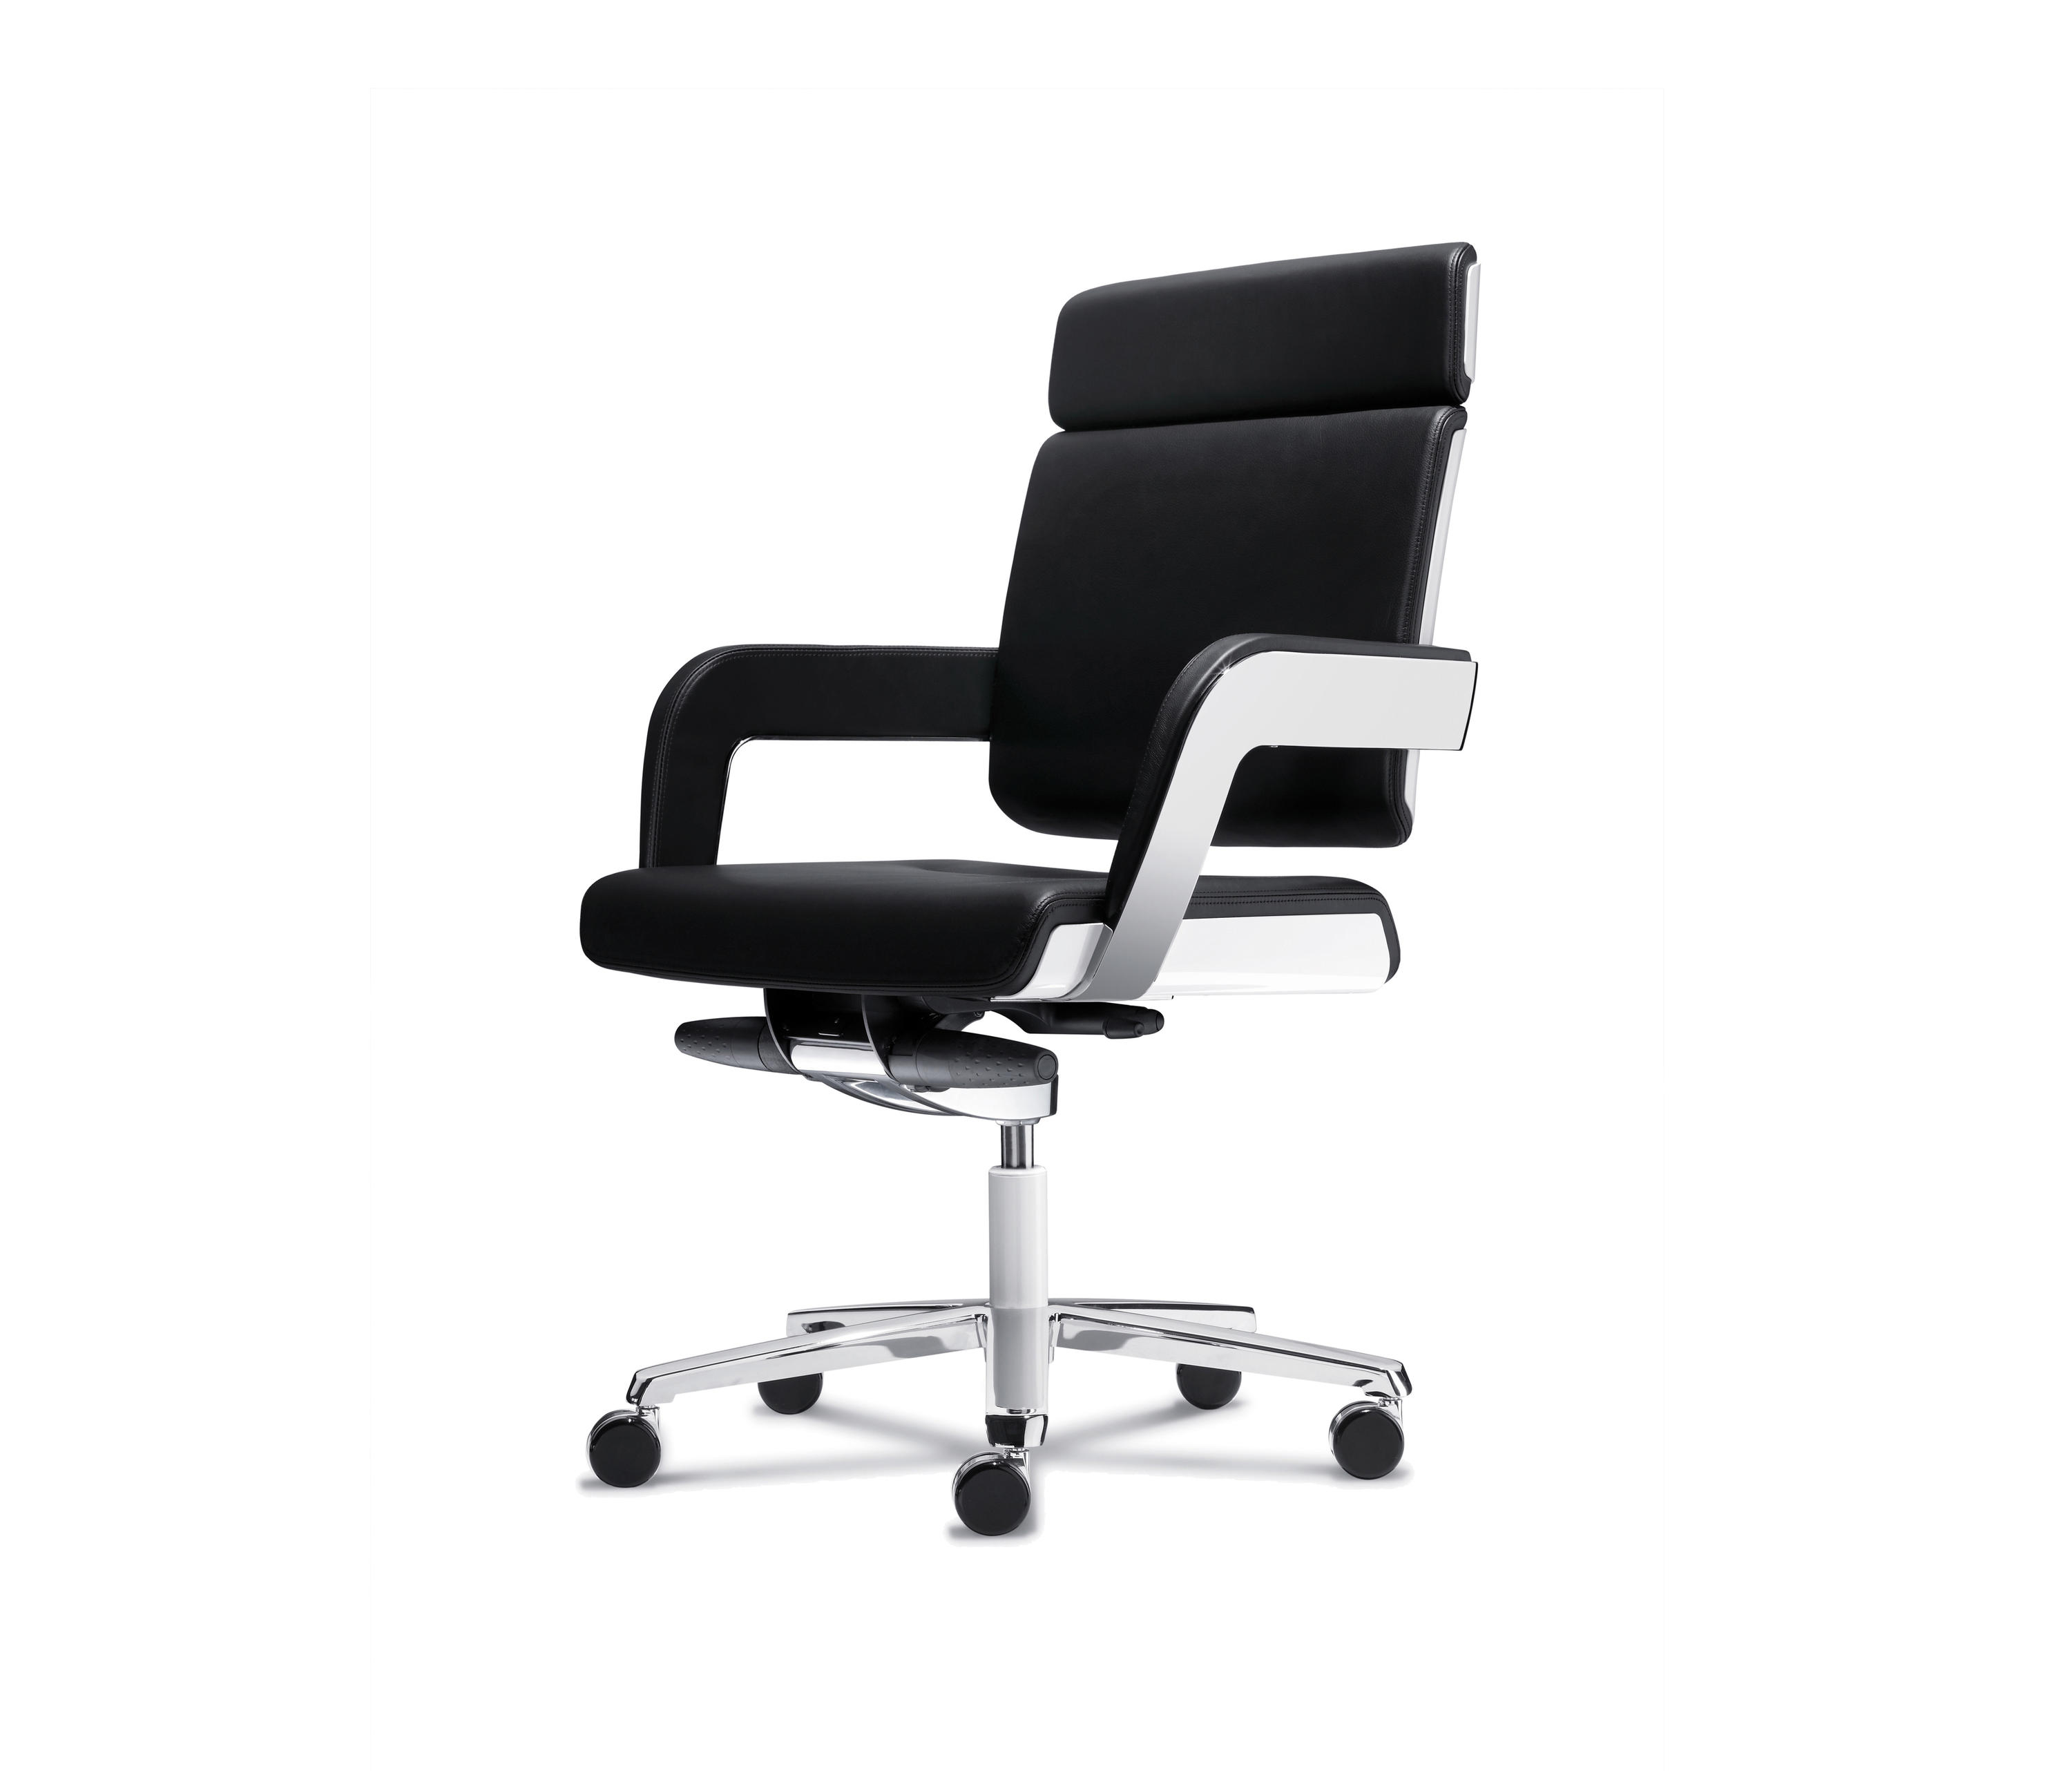 charta executive task chair executive chairs from k nig. Black Bedroom Furniture Sets. Home Design Ideas